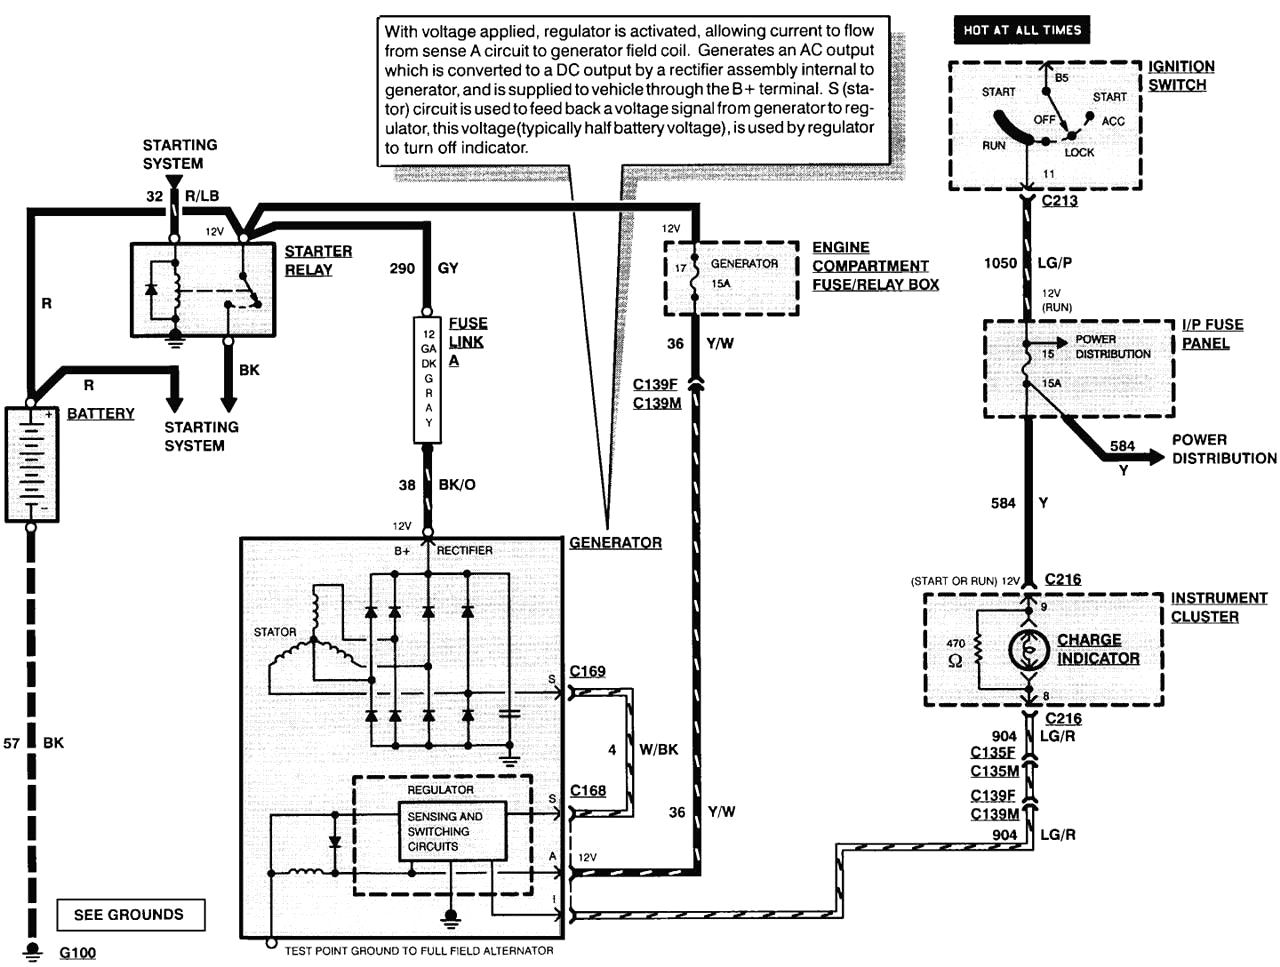 Ford alternator wiring diagrams sut understand s and remarkable ford alternator wiring diagrams sut understand s and remarkable diagram for asfbconference2016 Image collections